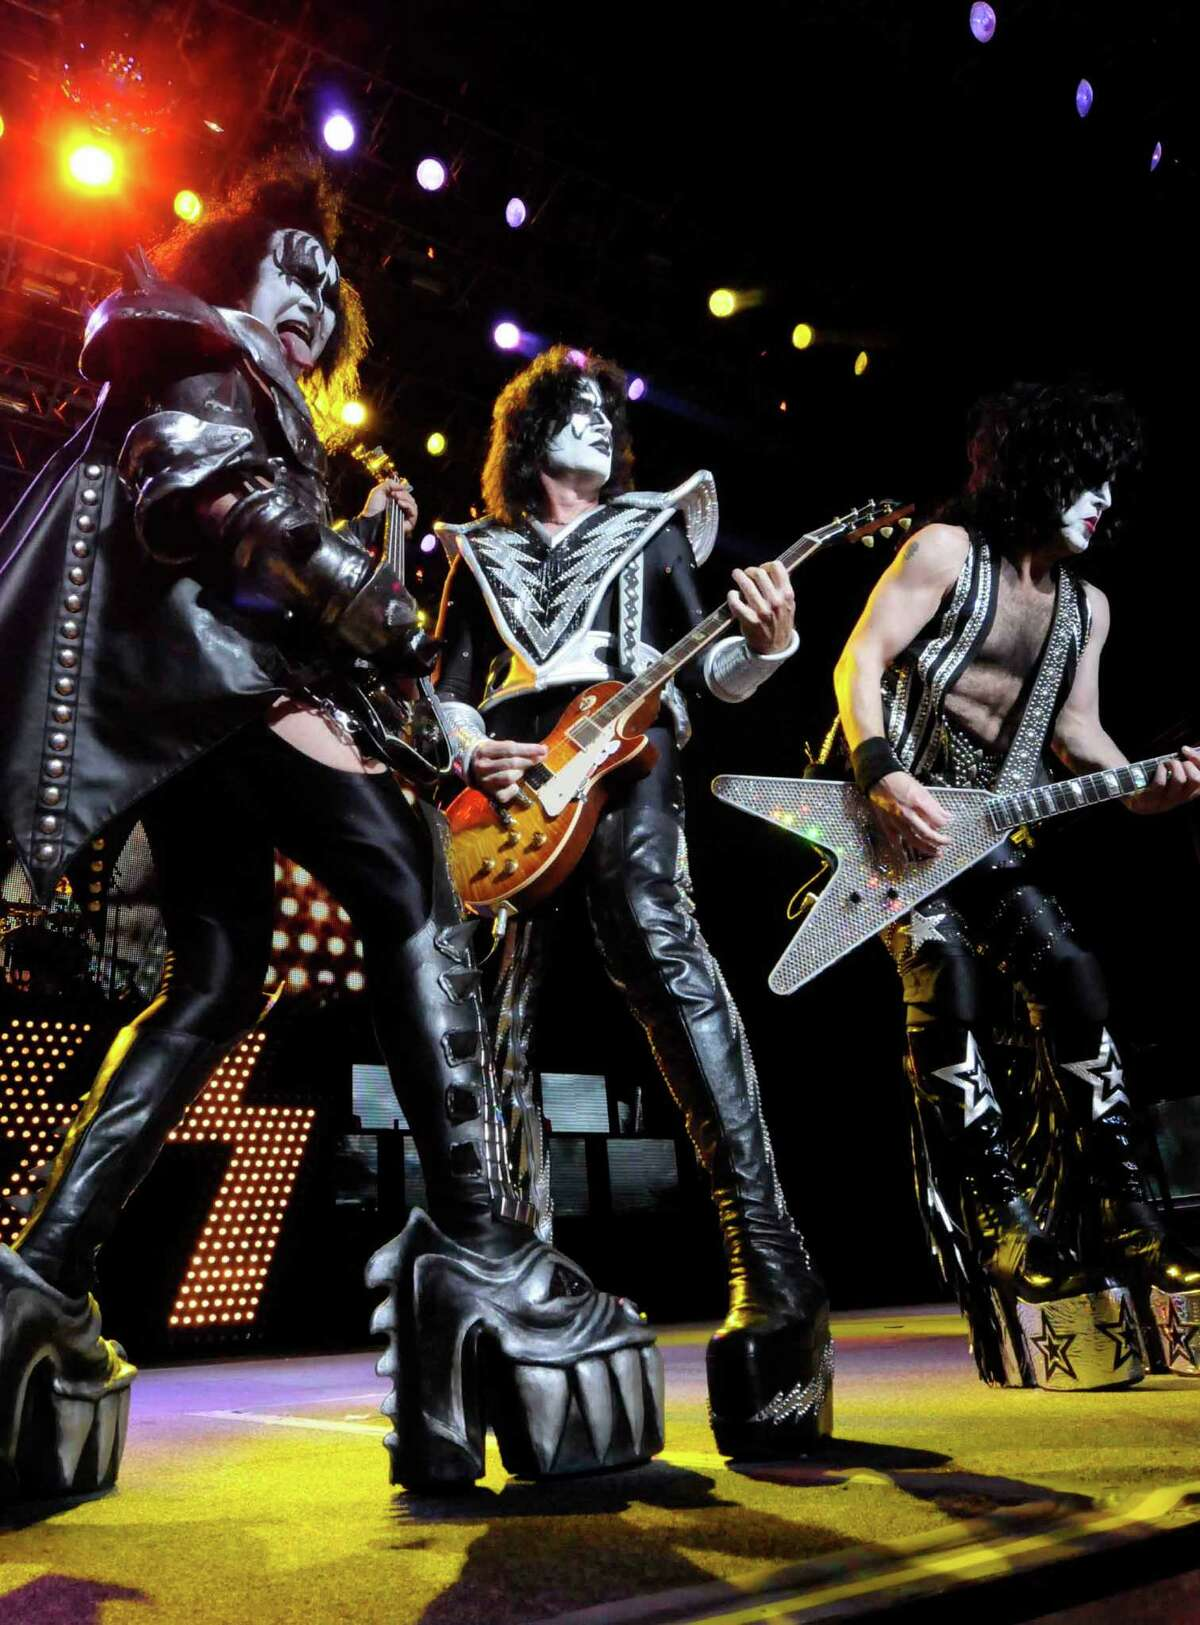 Gene Simmons sticks out his tongue in his classic fashion as Kiss performs at SPAC in Saratoga Springs, New York 8/17/2010. ( Michael P. Farrell / Times Union )